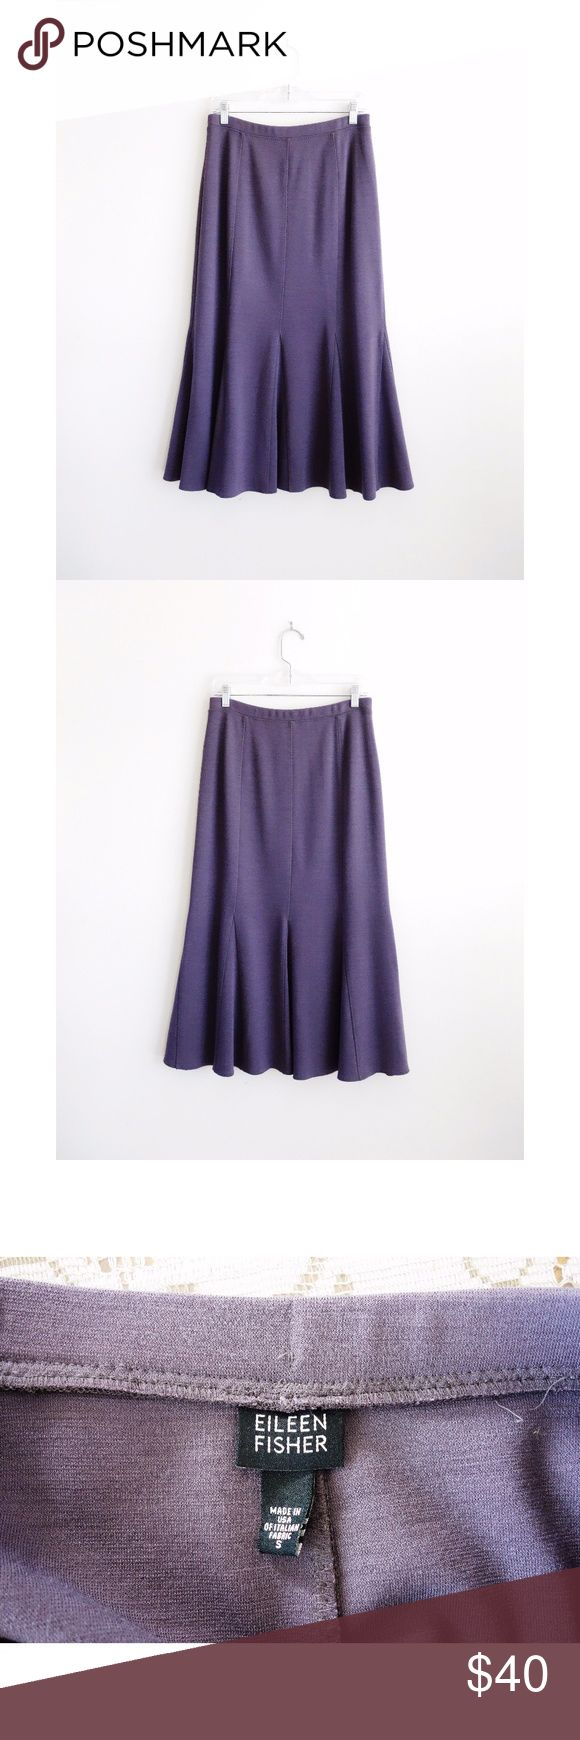 """Eileen Fisher Dusty Mauve Trumpet Midi Skirt sz S Eileen Fisher Dusty Mauve Lavender Purple Trumpet Flared Midi Skirt size Small, gently used--no rips, stains, or holes, made in USA, style S425, SE46WK, stretch waist, paneled princess seams, godet inserts for a fuller skirt at bottom half, longer midi length that will hit at or below mid-calf depending on height, 60% viscose, 40% wool, 15"""" across waist, 19.5"""" across hips, 33"""" waist to hem Eileen Fisher Skirts Midi"""